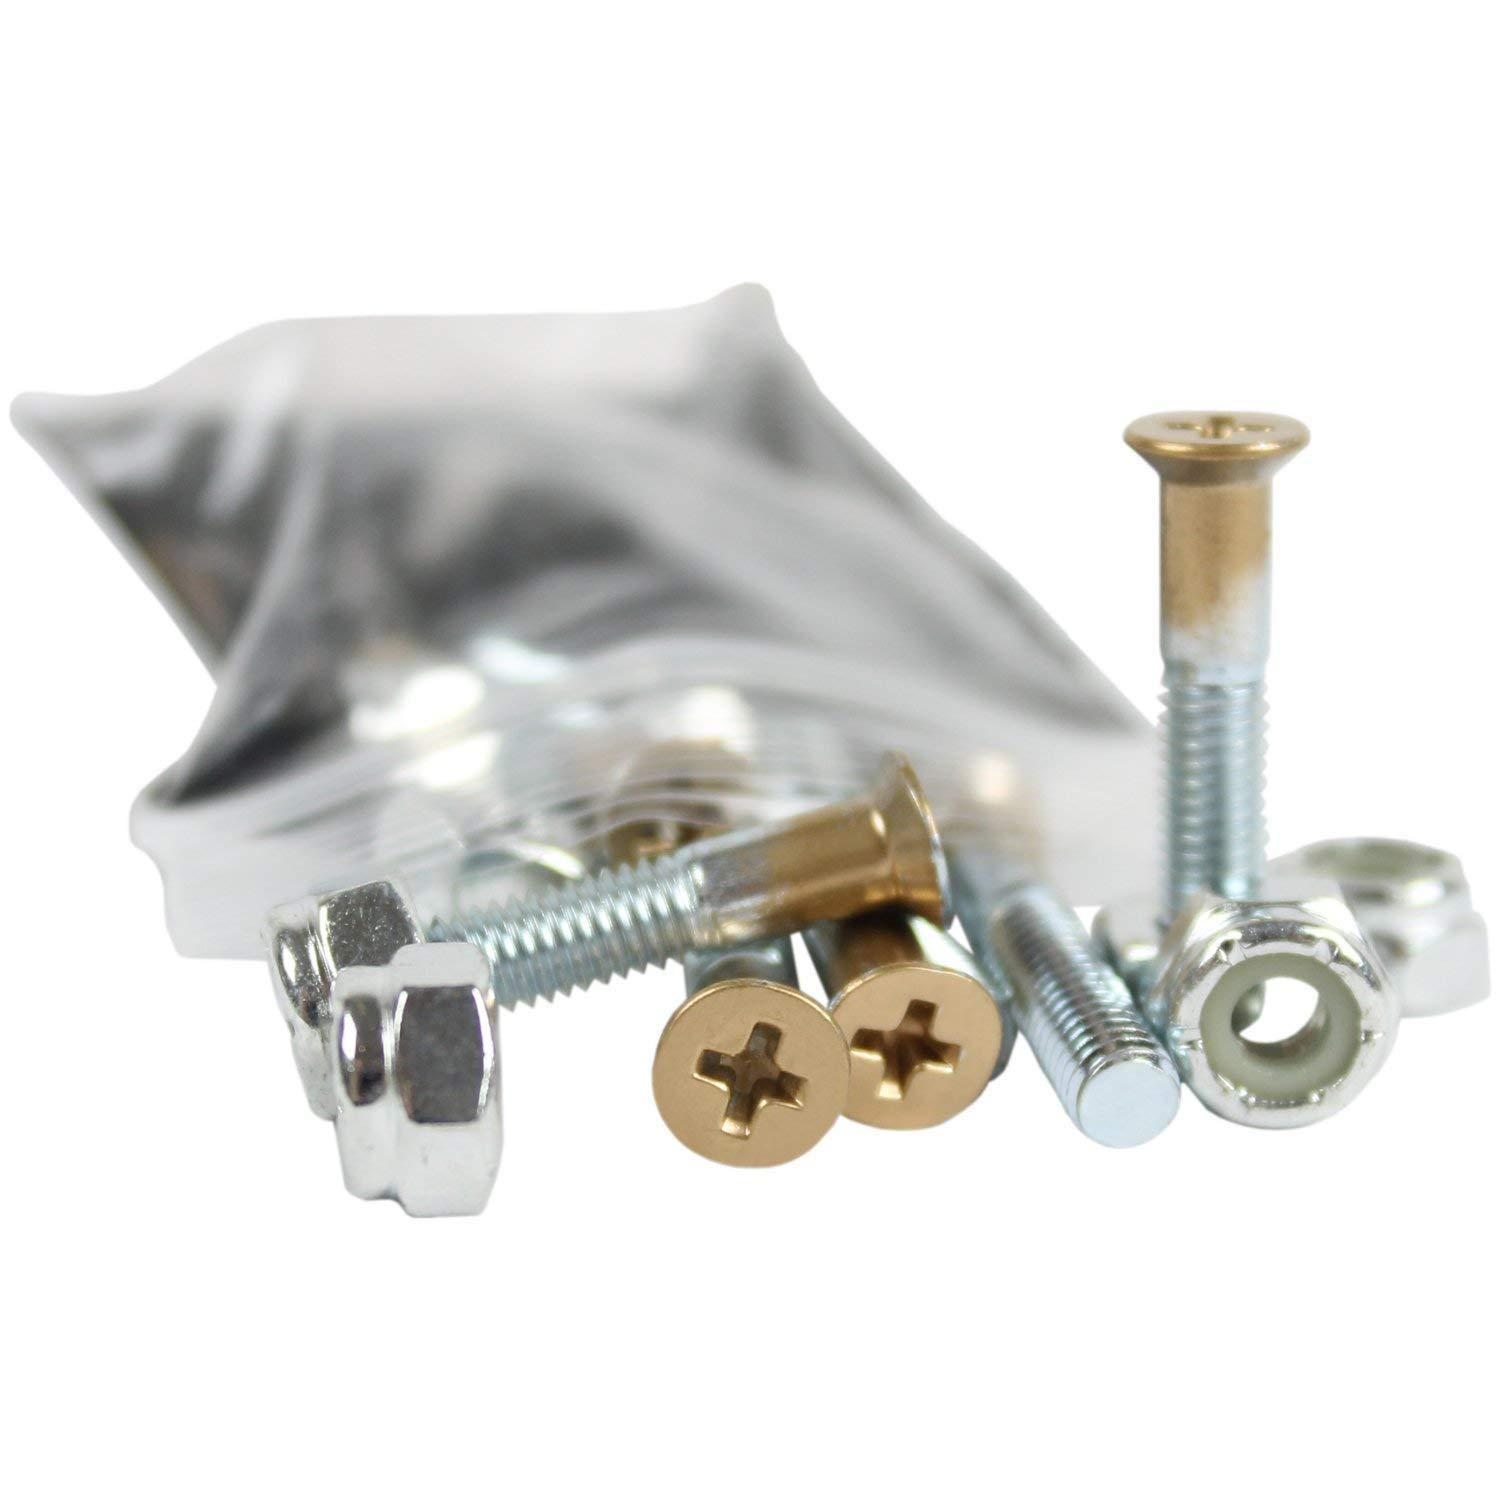 Get Quotations · Dimebag Hardware Skateboard Mounting Nuts and Bolts 1